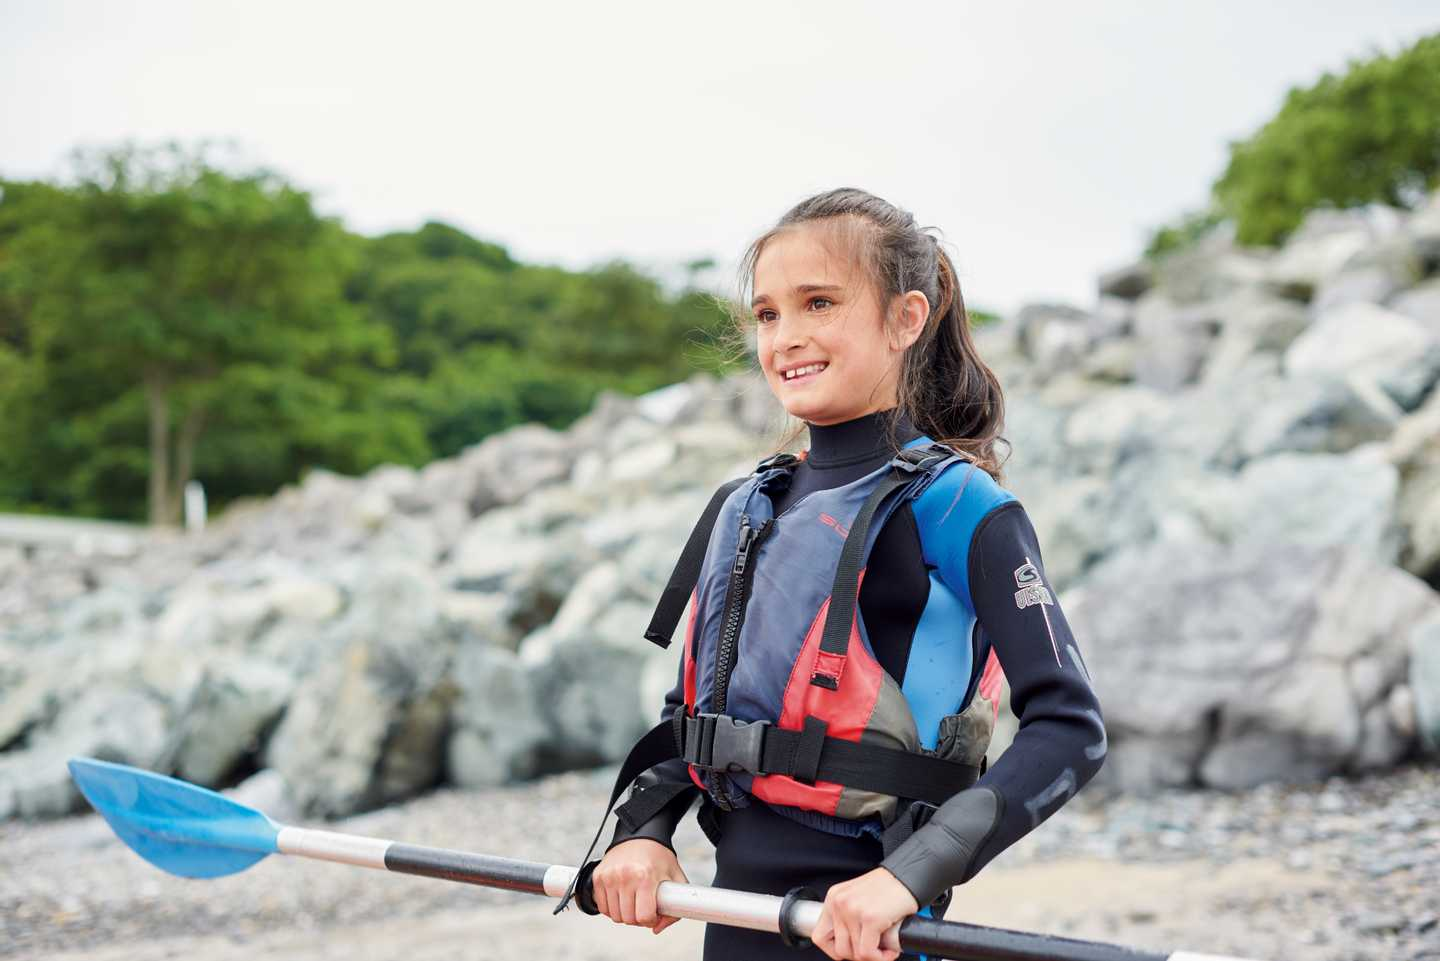 Girl standing with oar ready to kayak